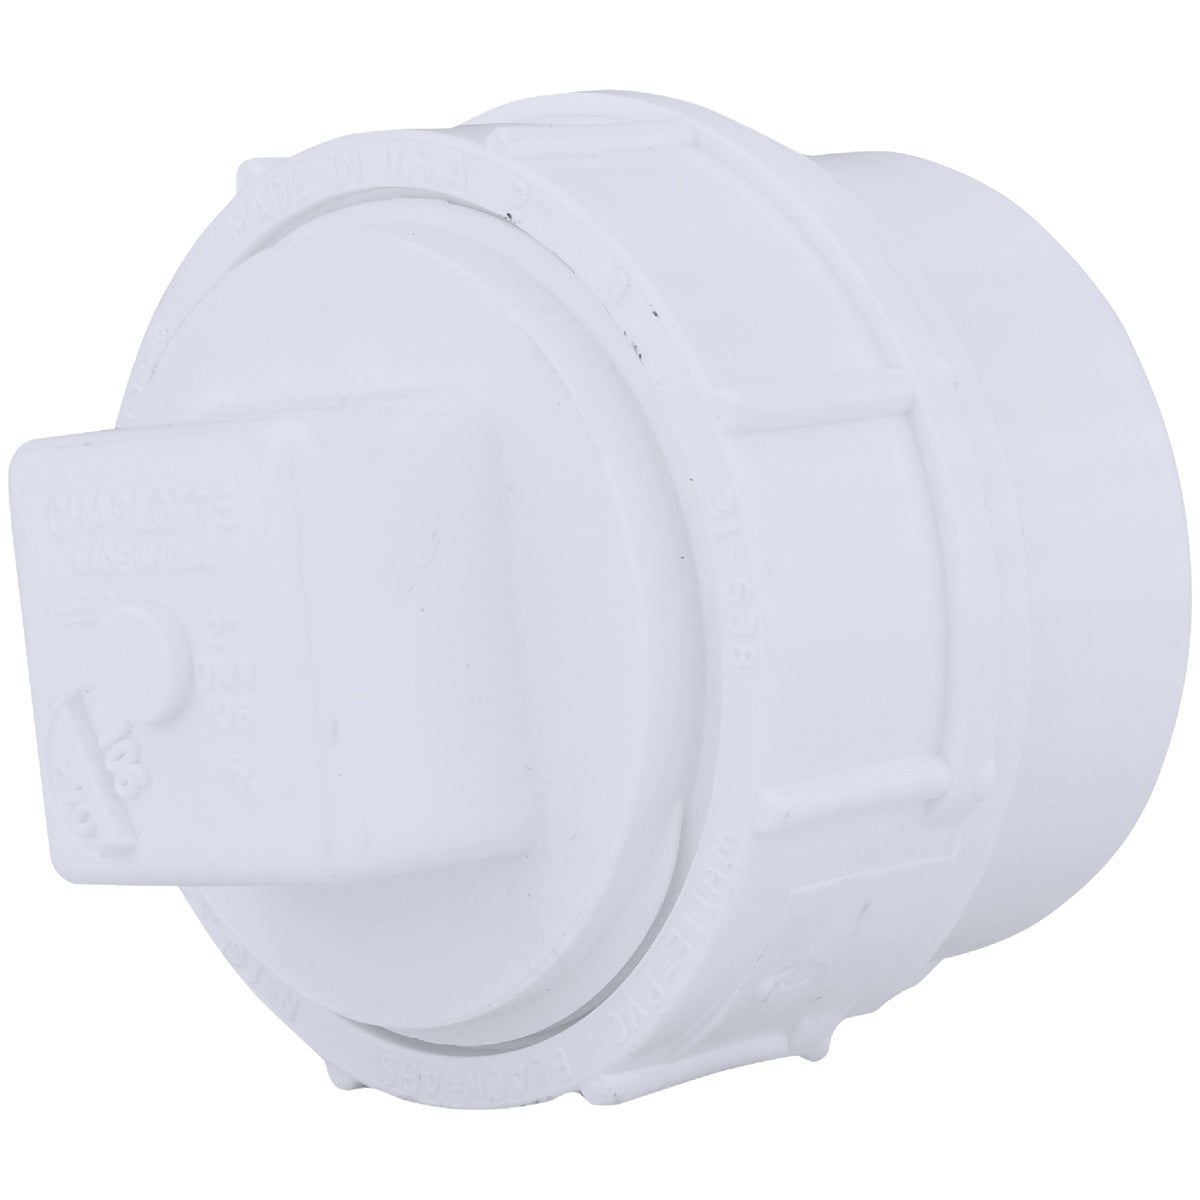 "2""PVC-DWV FITTING W/PLUG - 71620 by Genova Inc  Pvc Dwv"